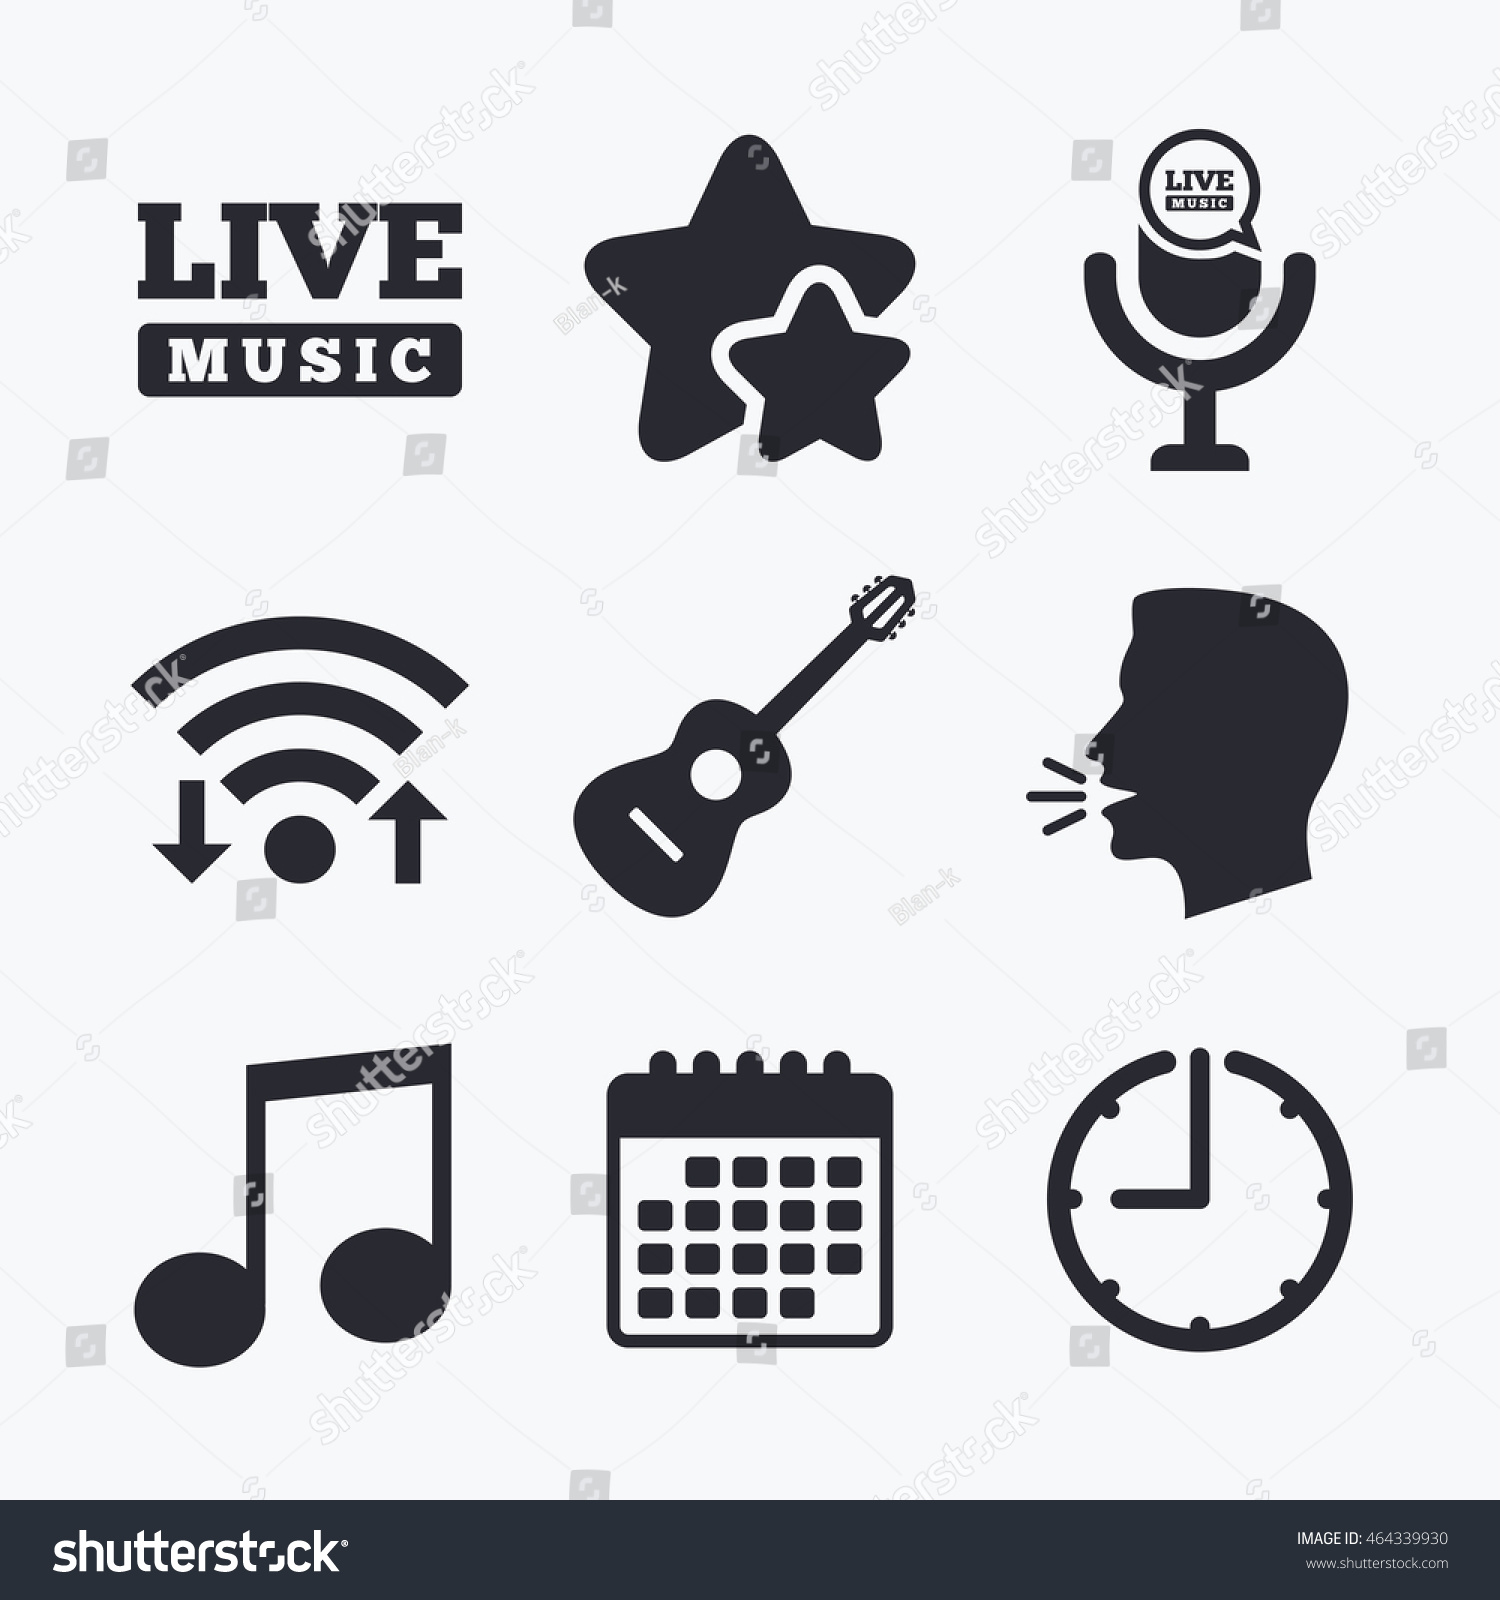 Musical elements icons microphone live music stock illustration musical elements icons microphone and live music symbols music note and acoustic guitar signs buycottarizona